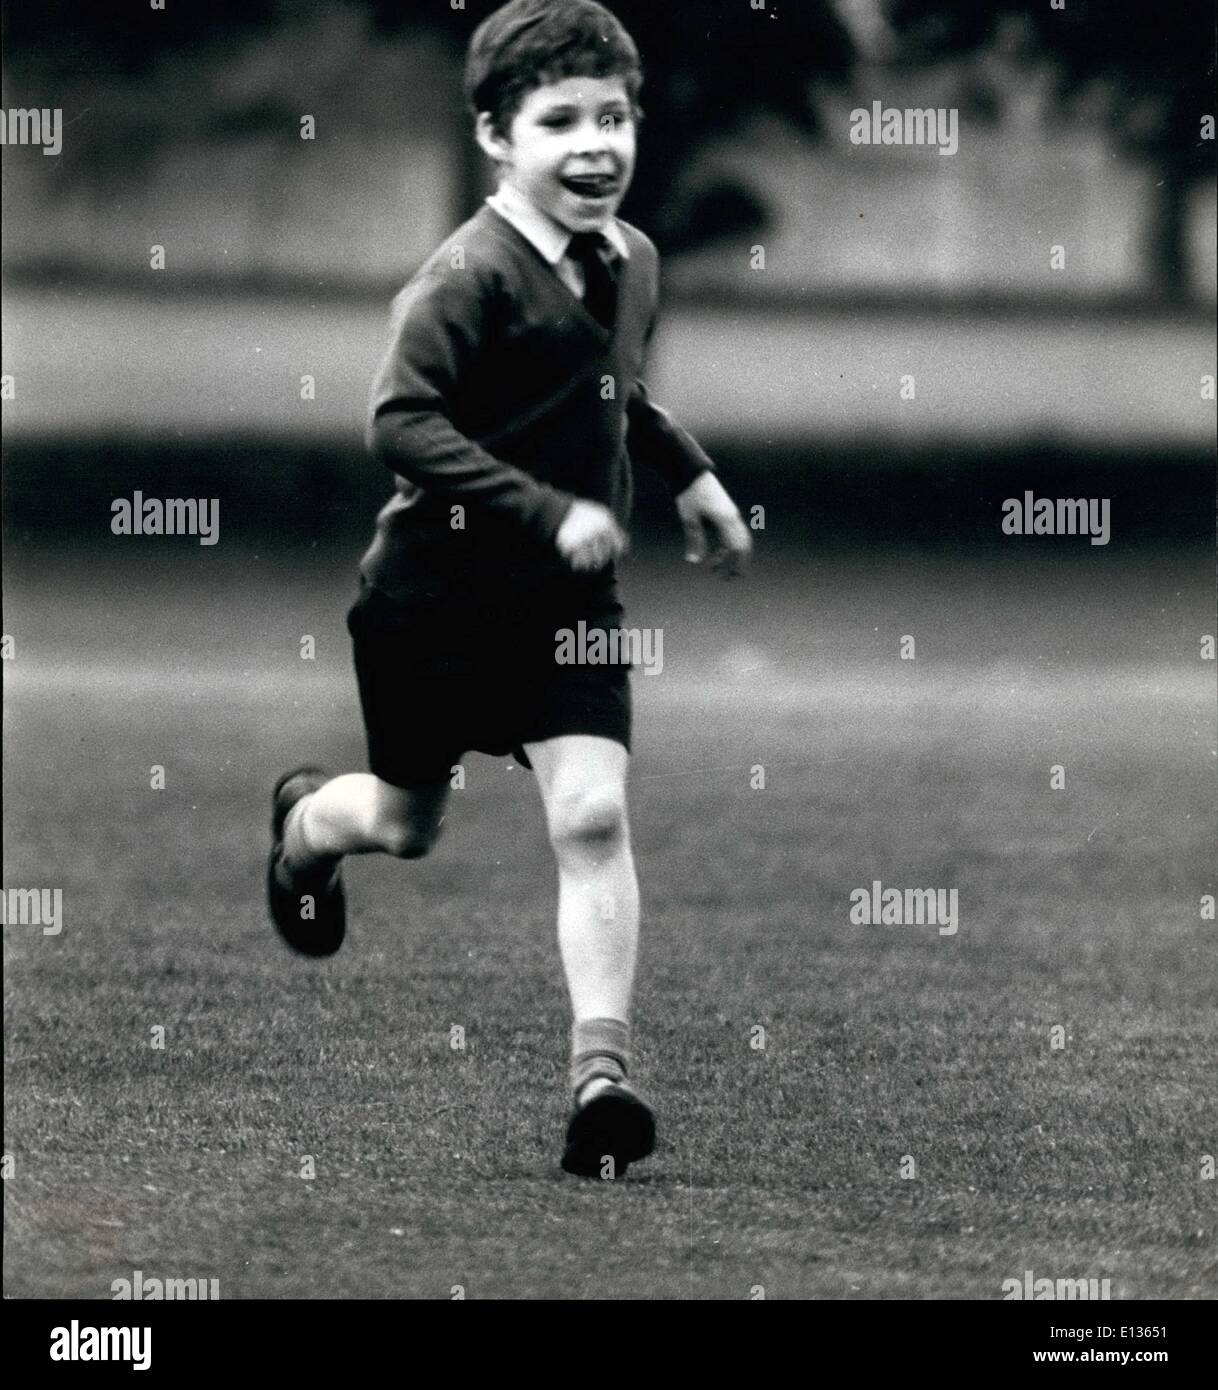 Feb. 28, 2012 - Like any little boy enjoying a game of cricket, 7 year old Viscount Linley runs to retrieve the ball. Son of Princess Margaret and the Earl of Snowdon. - Stock Image